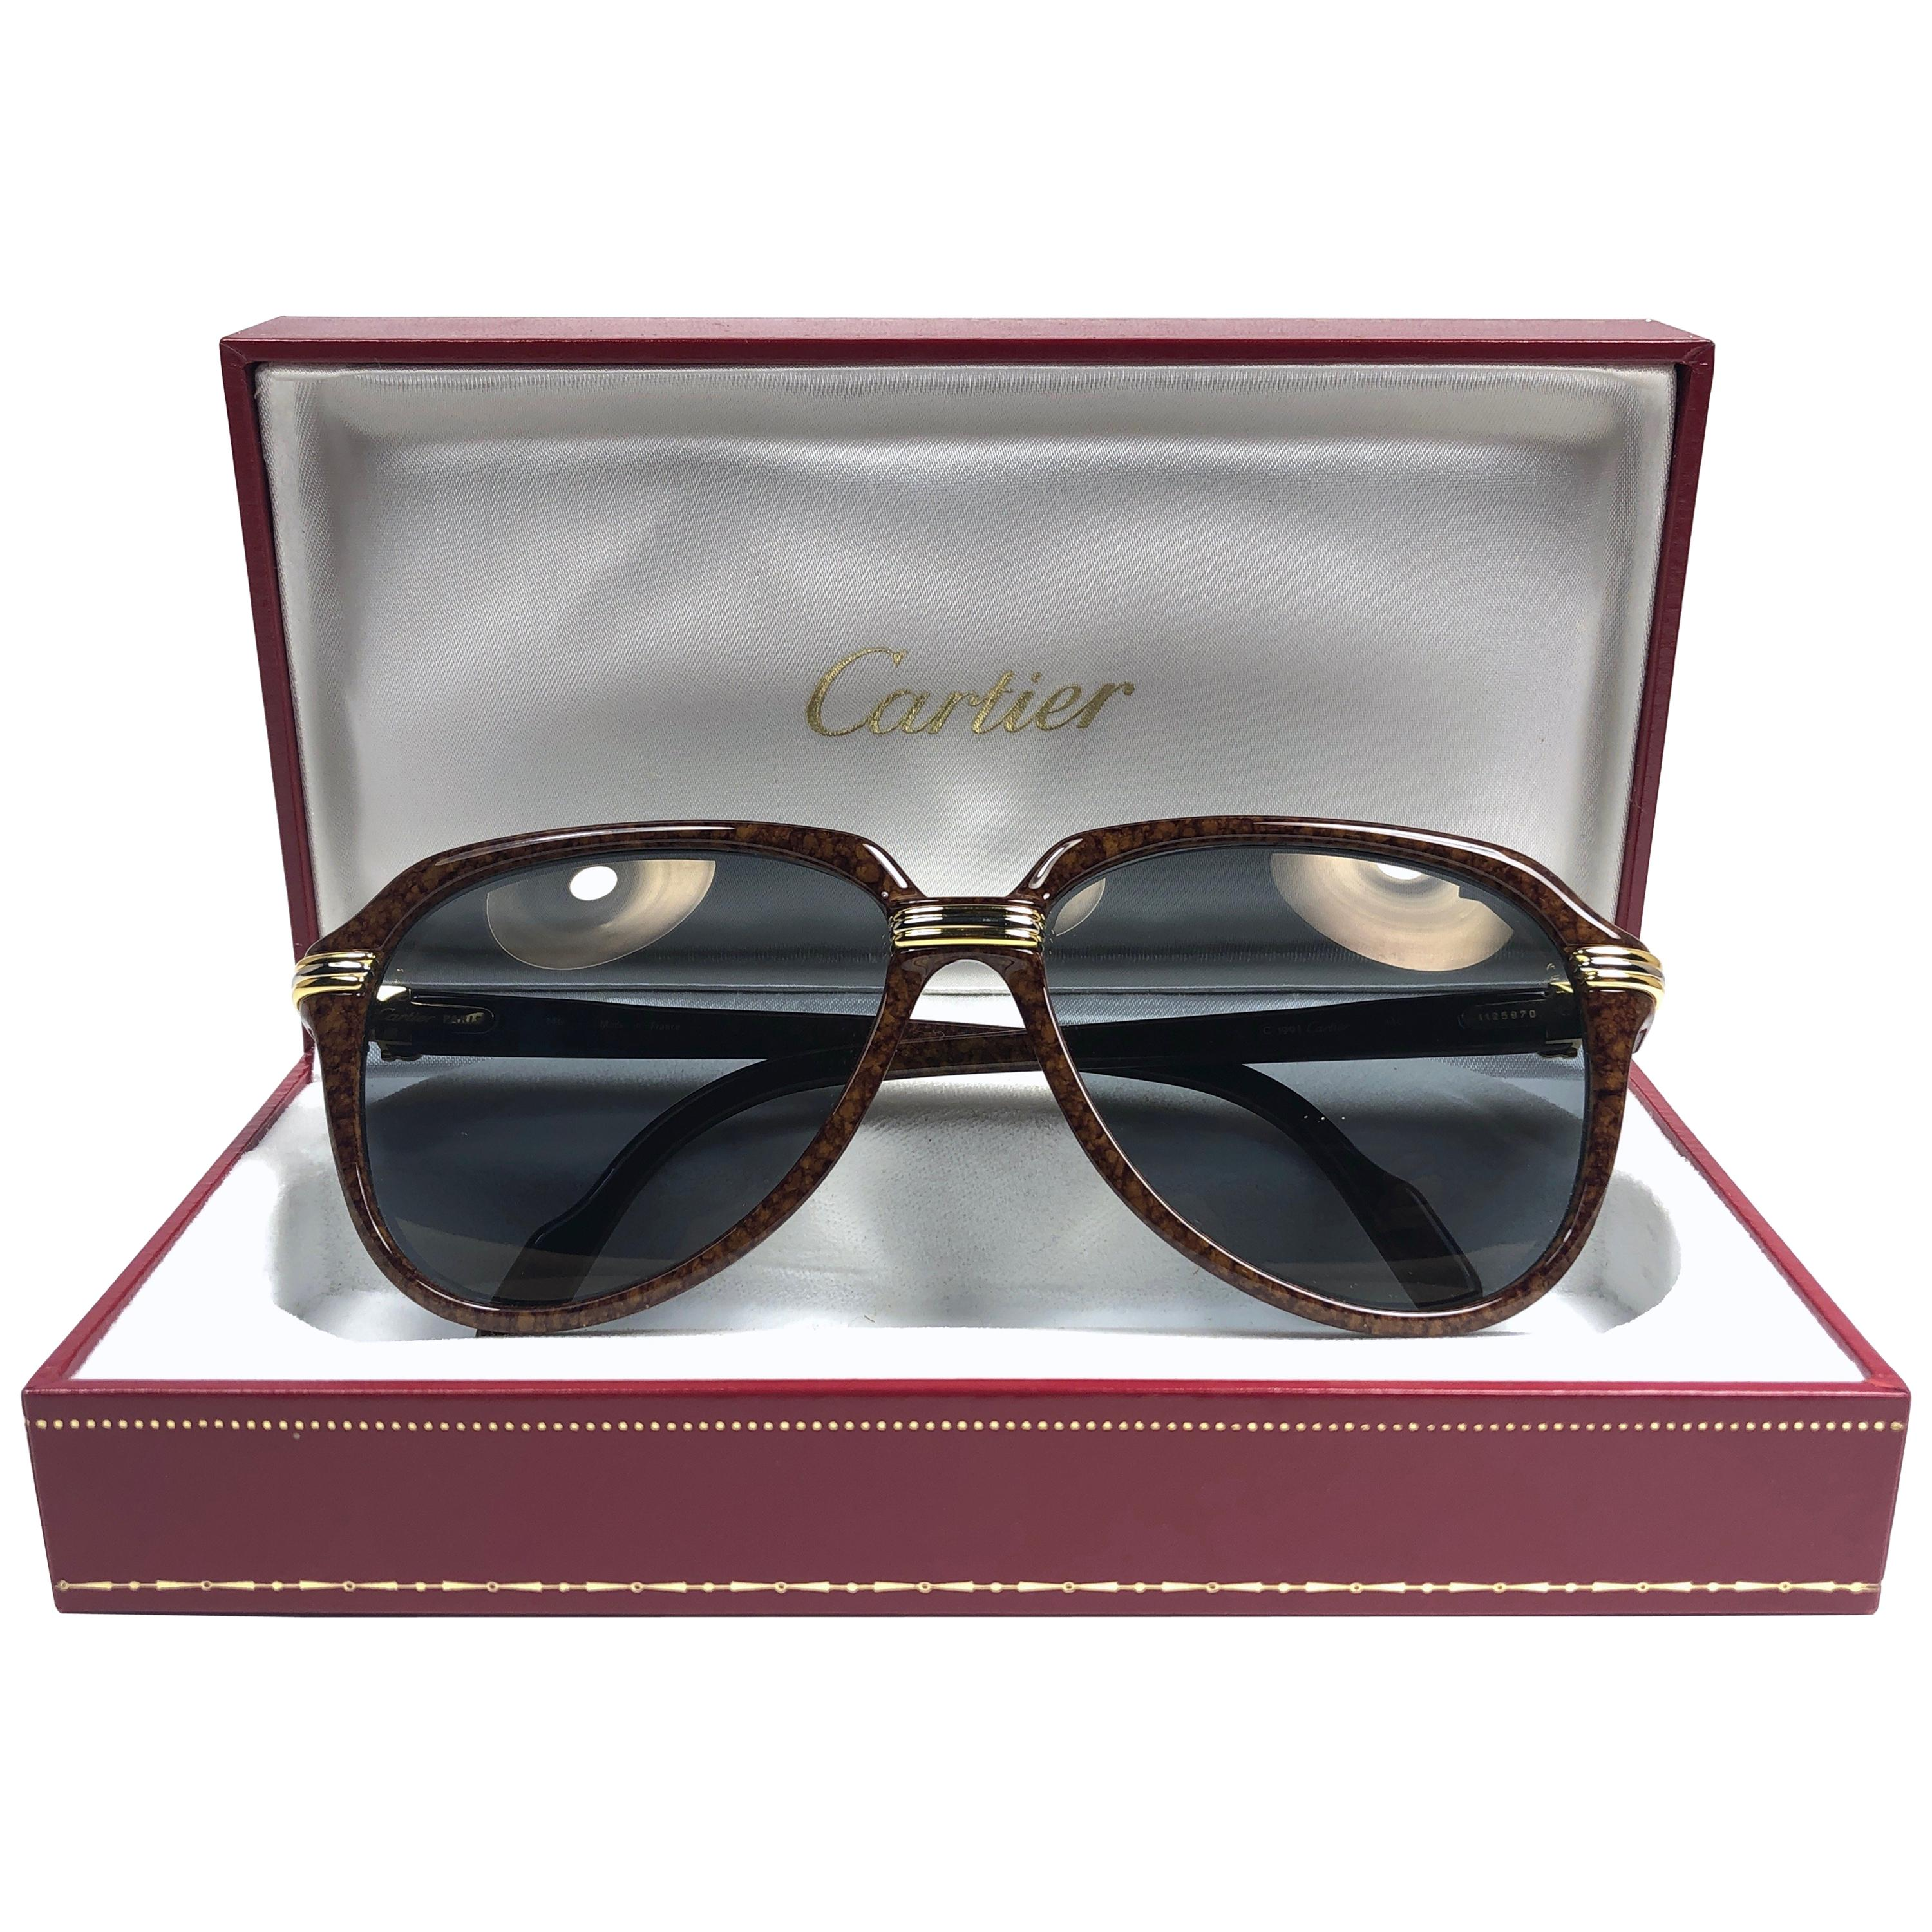 1f07a3fd9f Vintage Cartier Sunglasses - 156 For Sale at 1stdibs